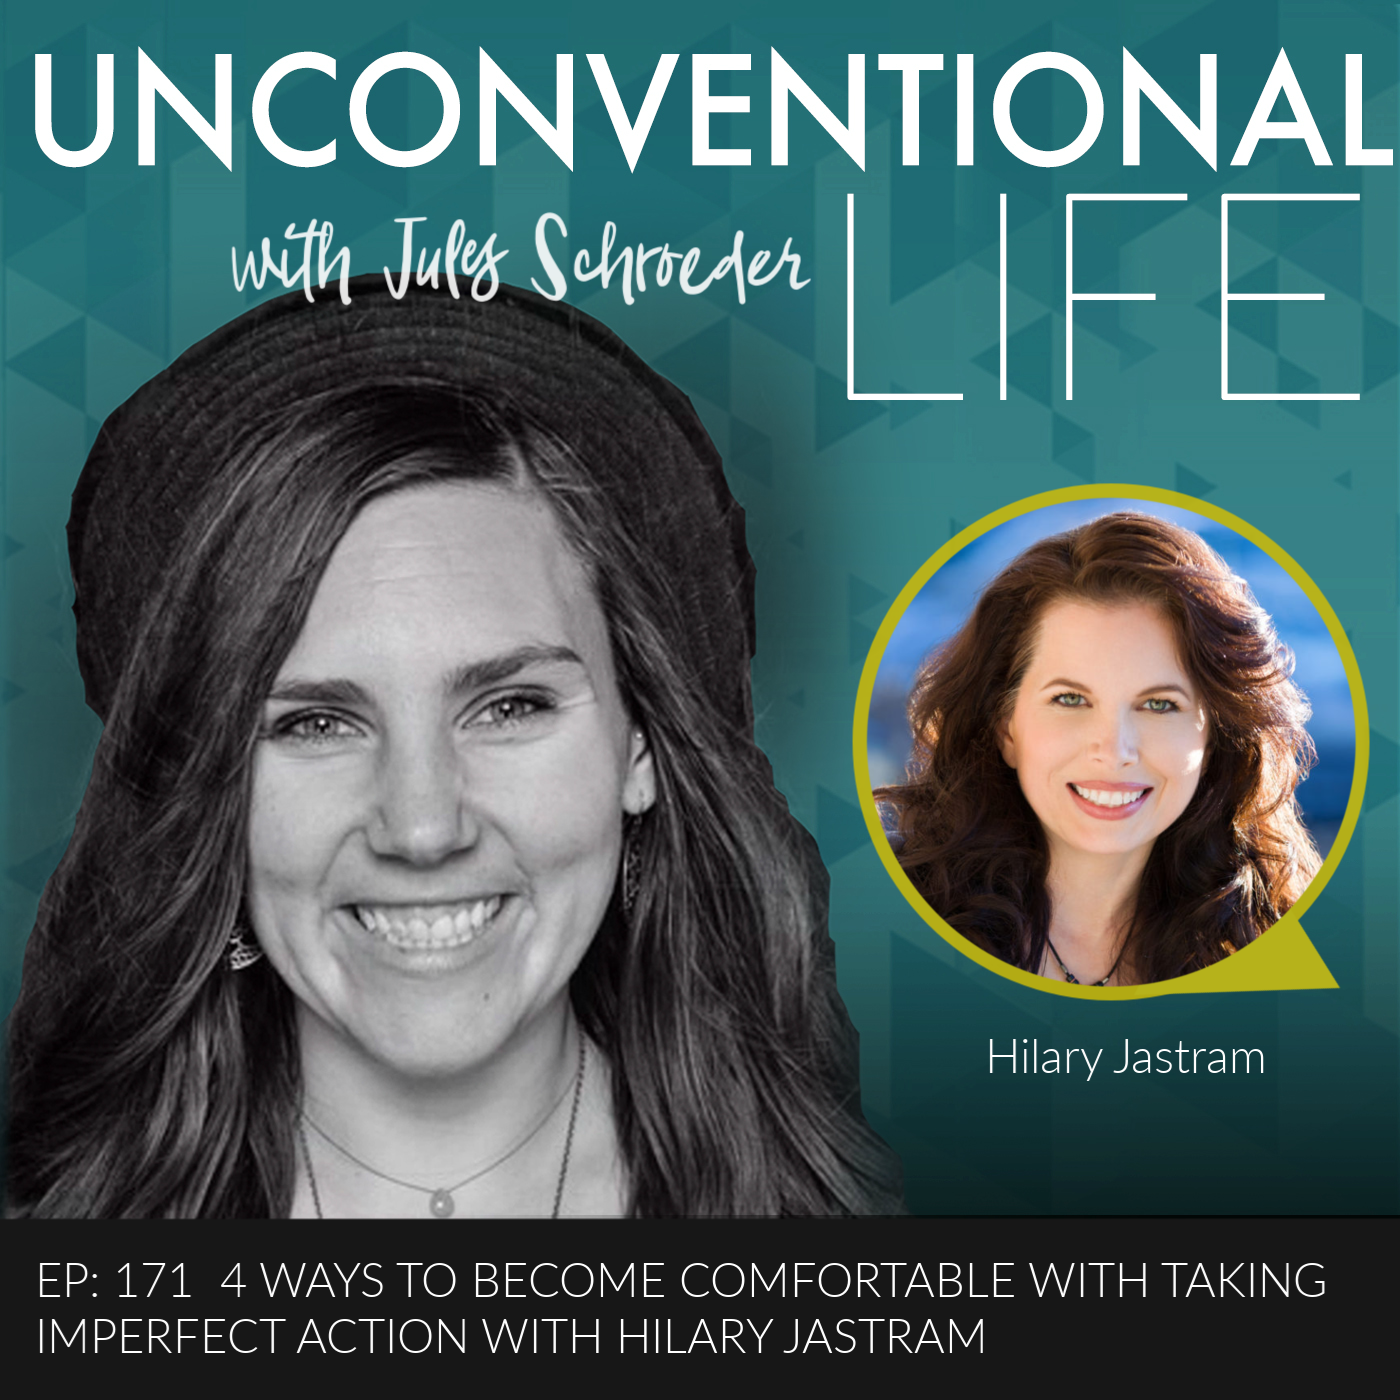 EP: 171 4 Ways to Become Comfortable with Taking Imperfect Action with Hilary Jastram